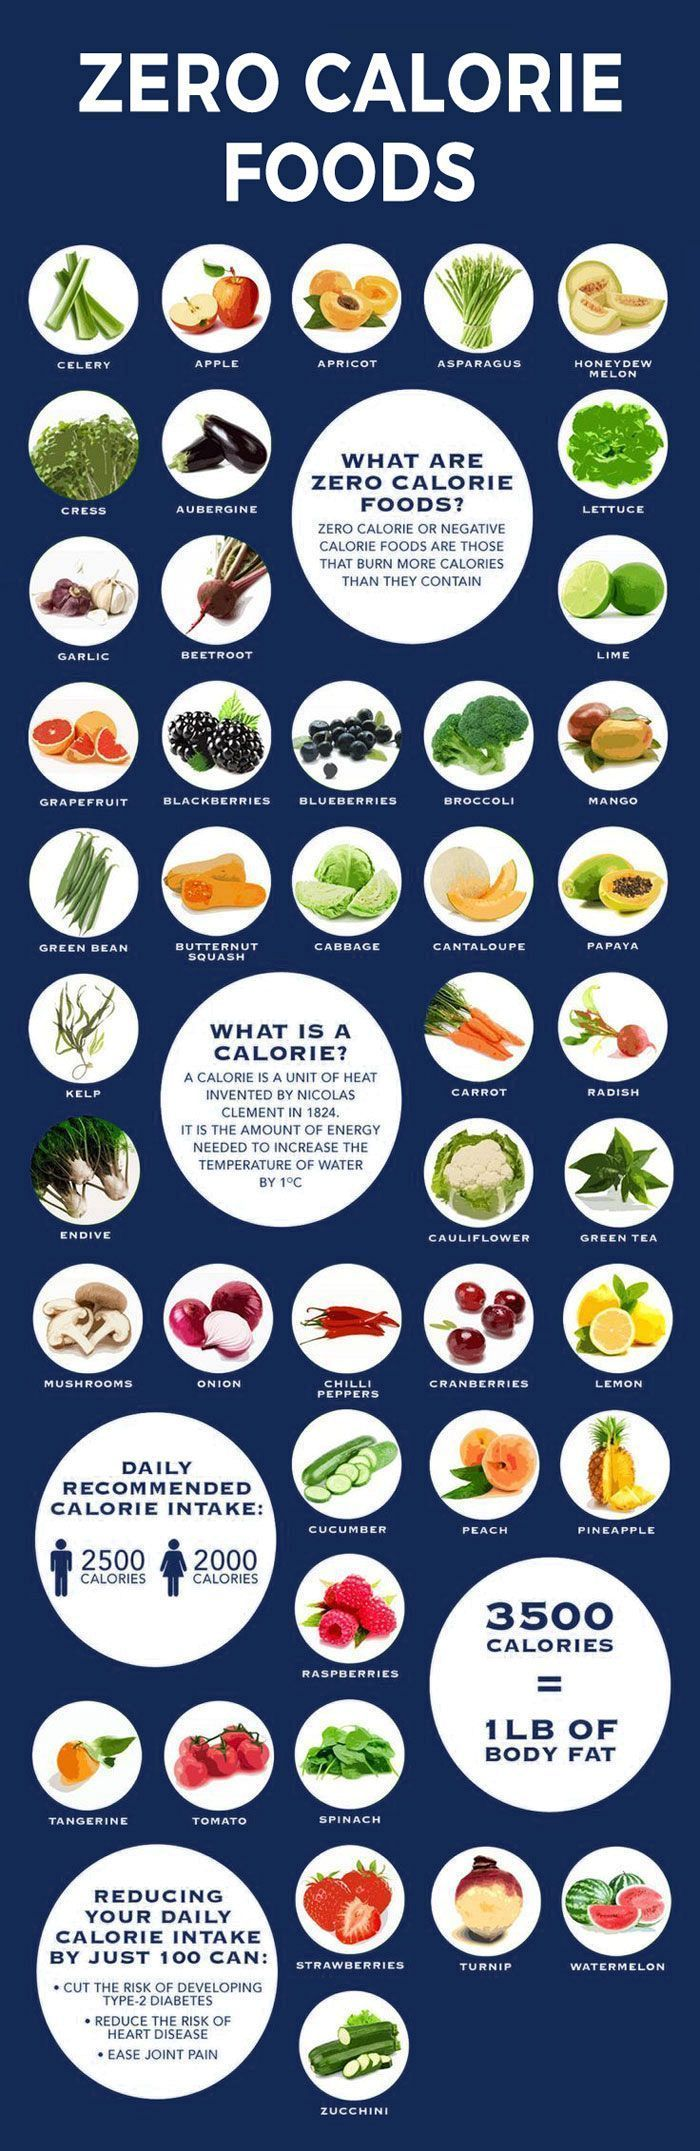 Fat-burning foods. Zero calorie/negative calorie foods.